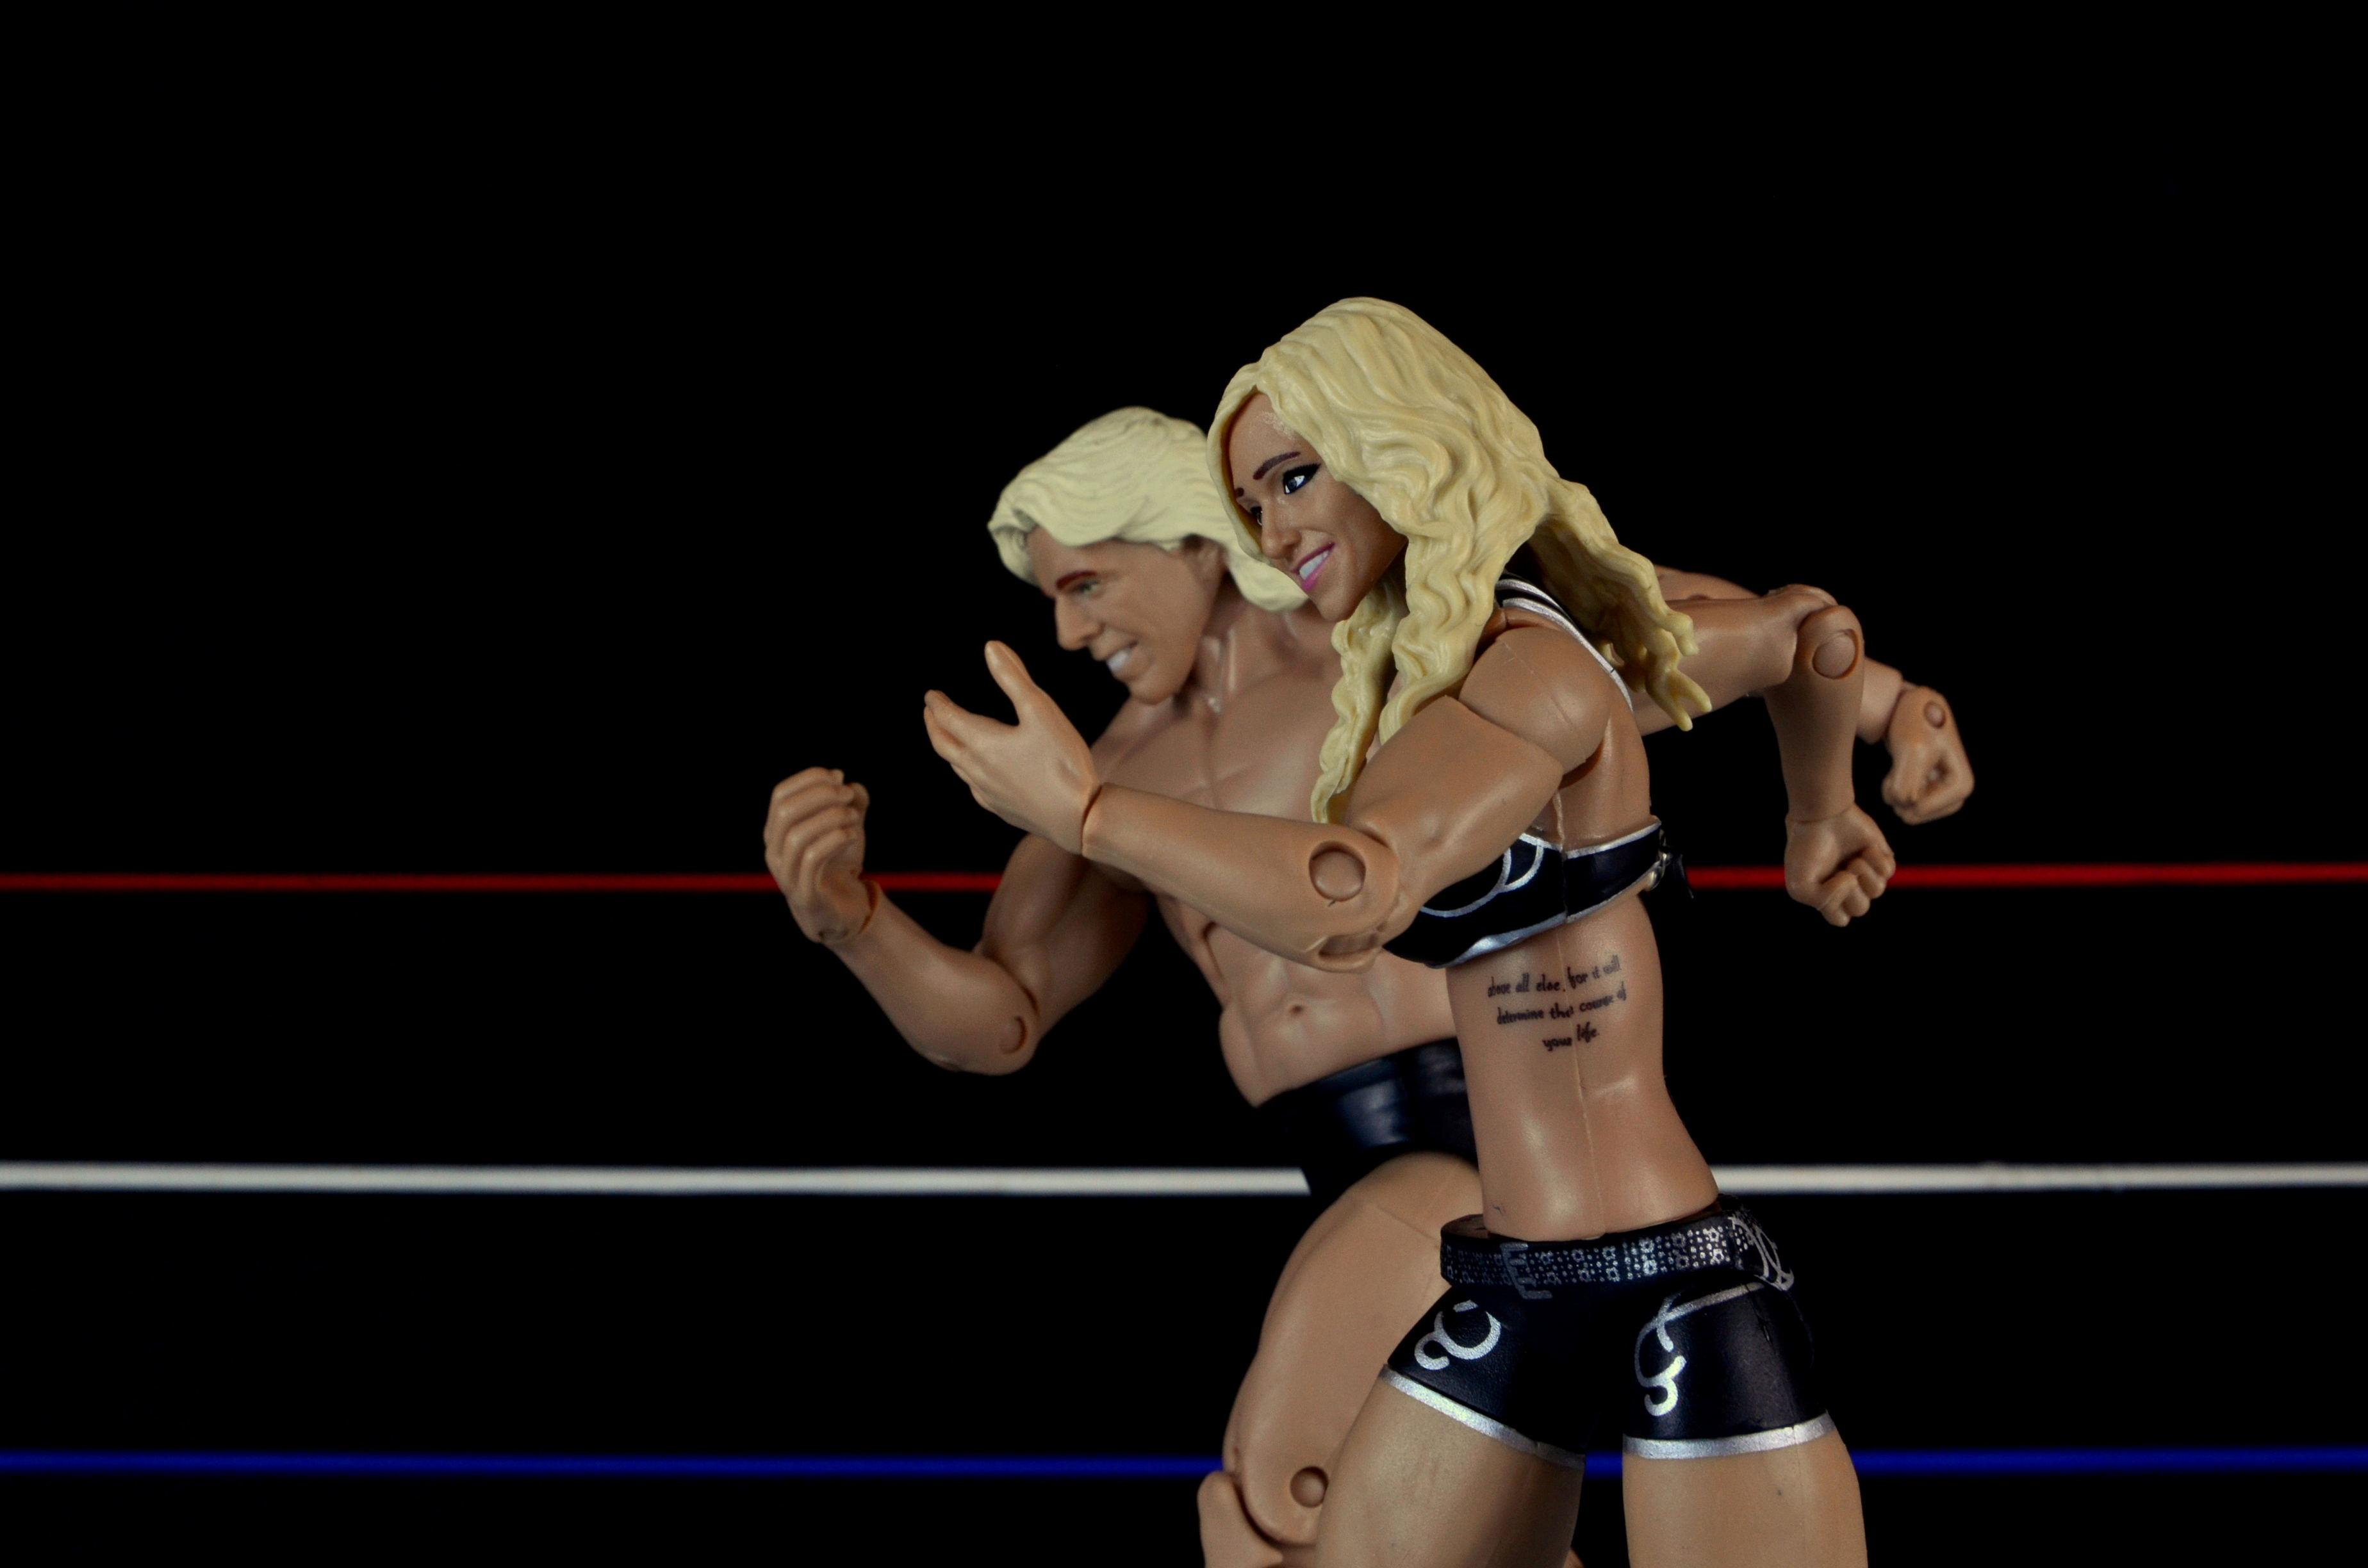 wwe-charlotte-figure-review-strutting-with-ric-flair